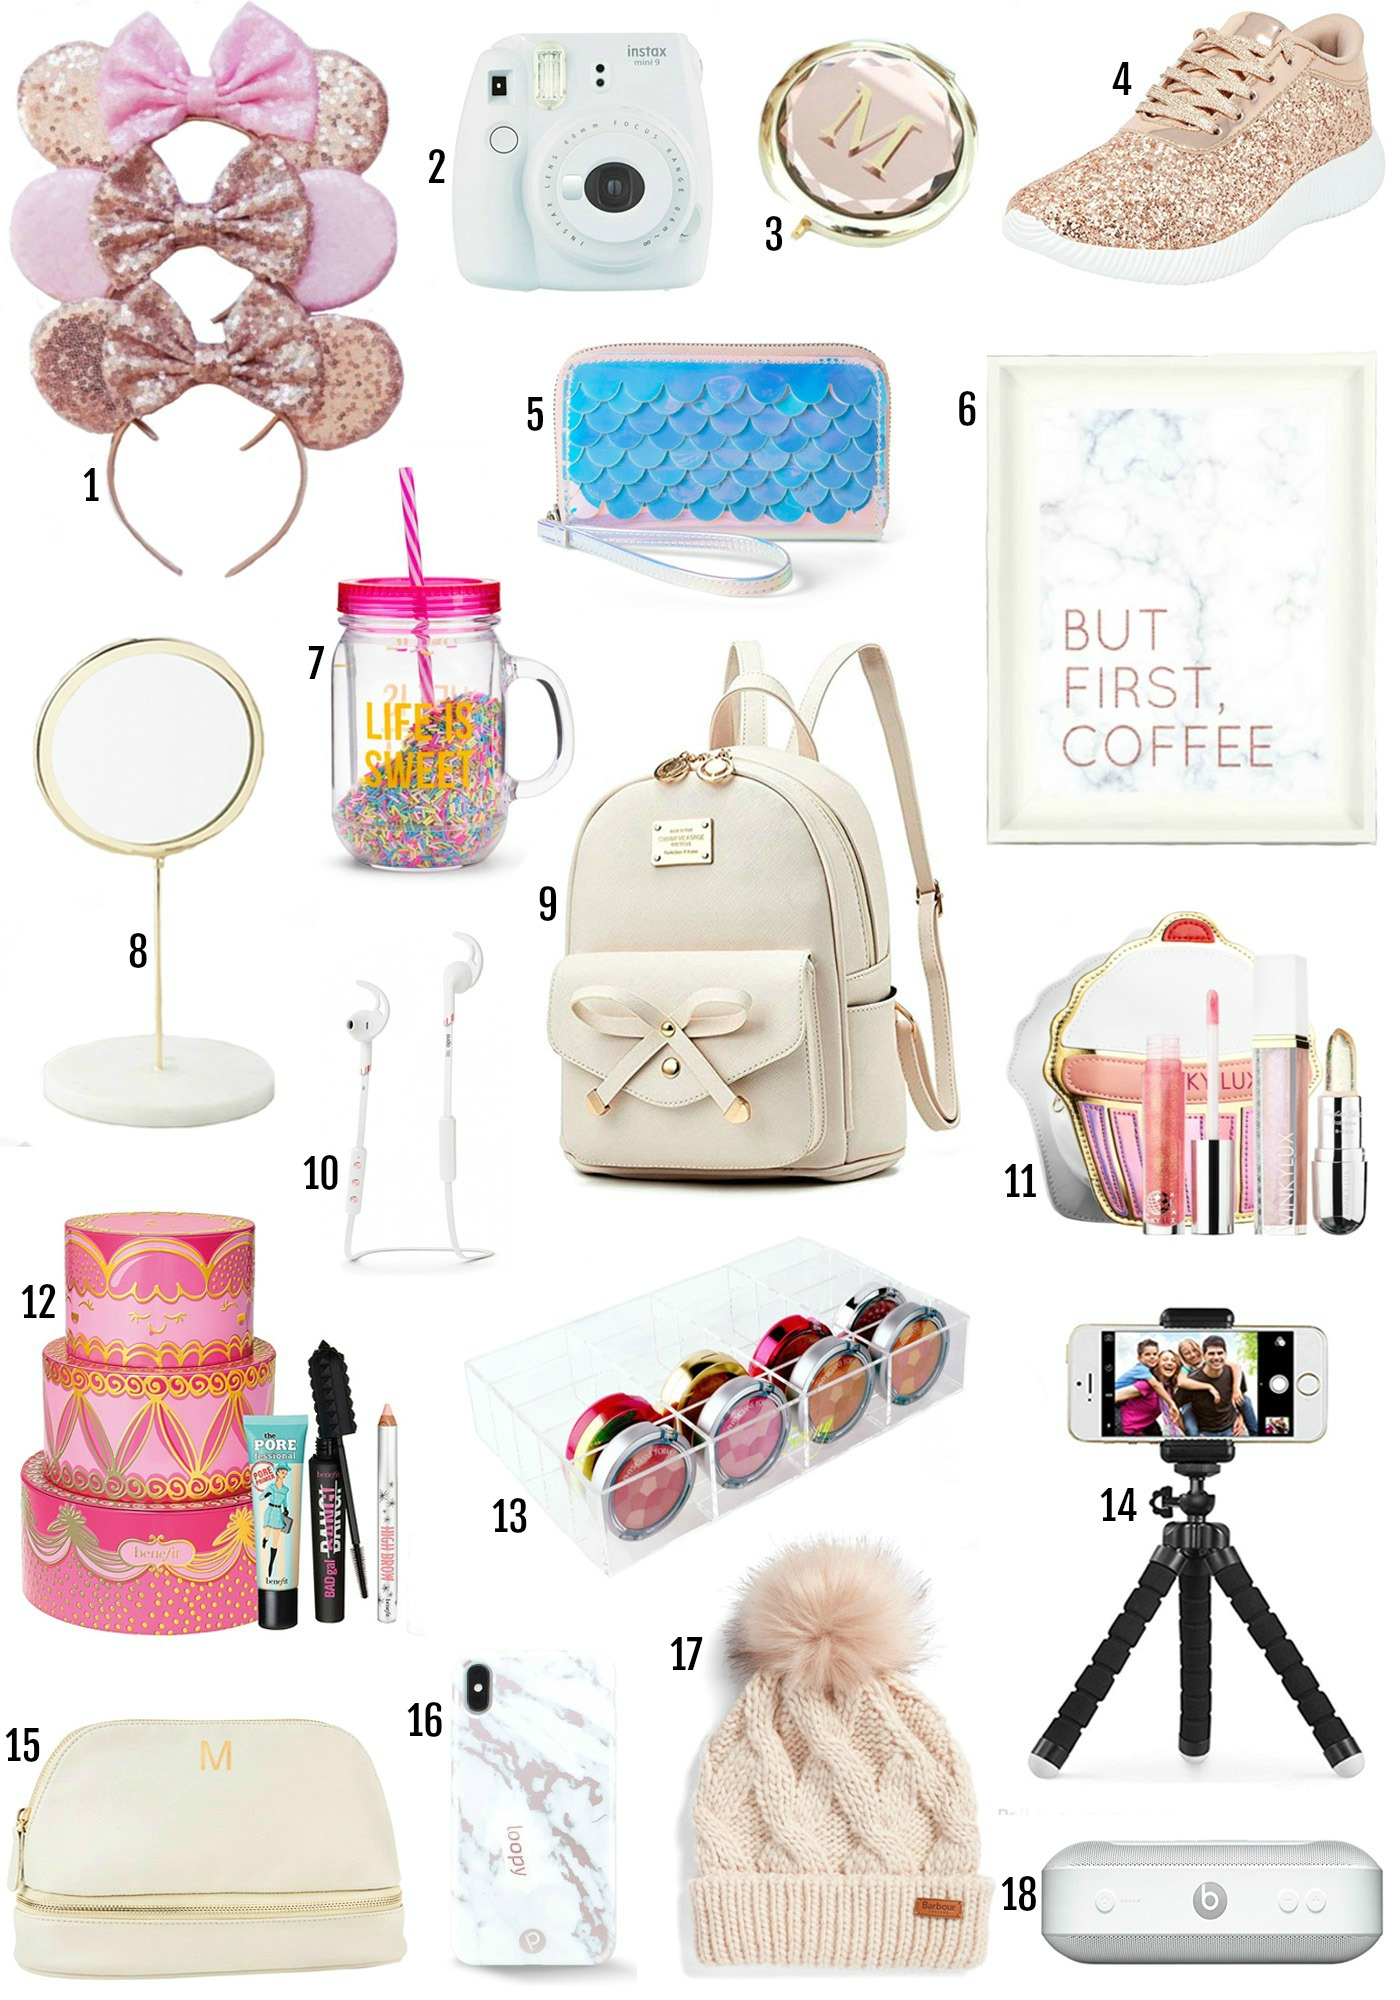 9b7ab76137e Mash Elle beauty blogger gift ideas